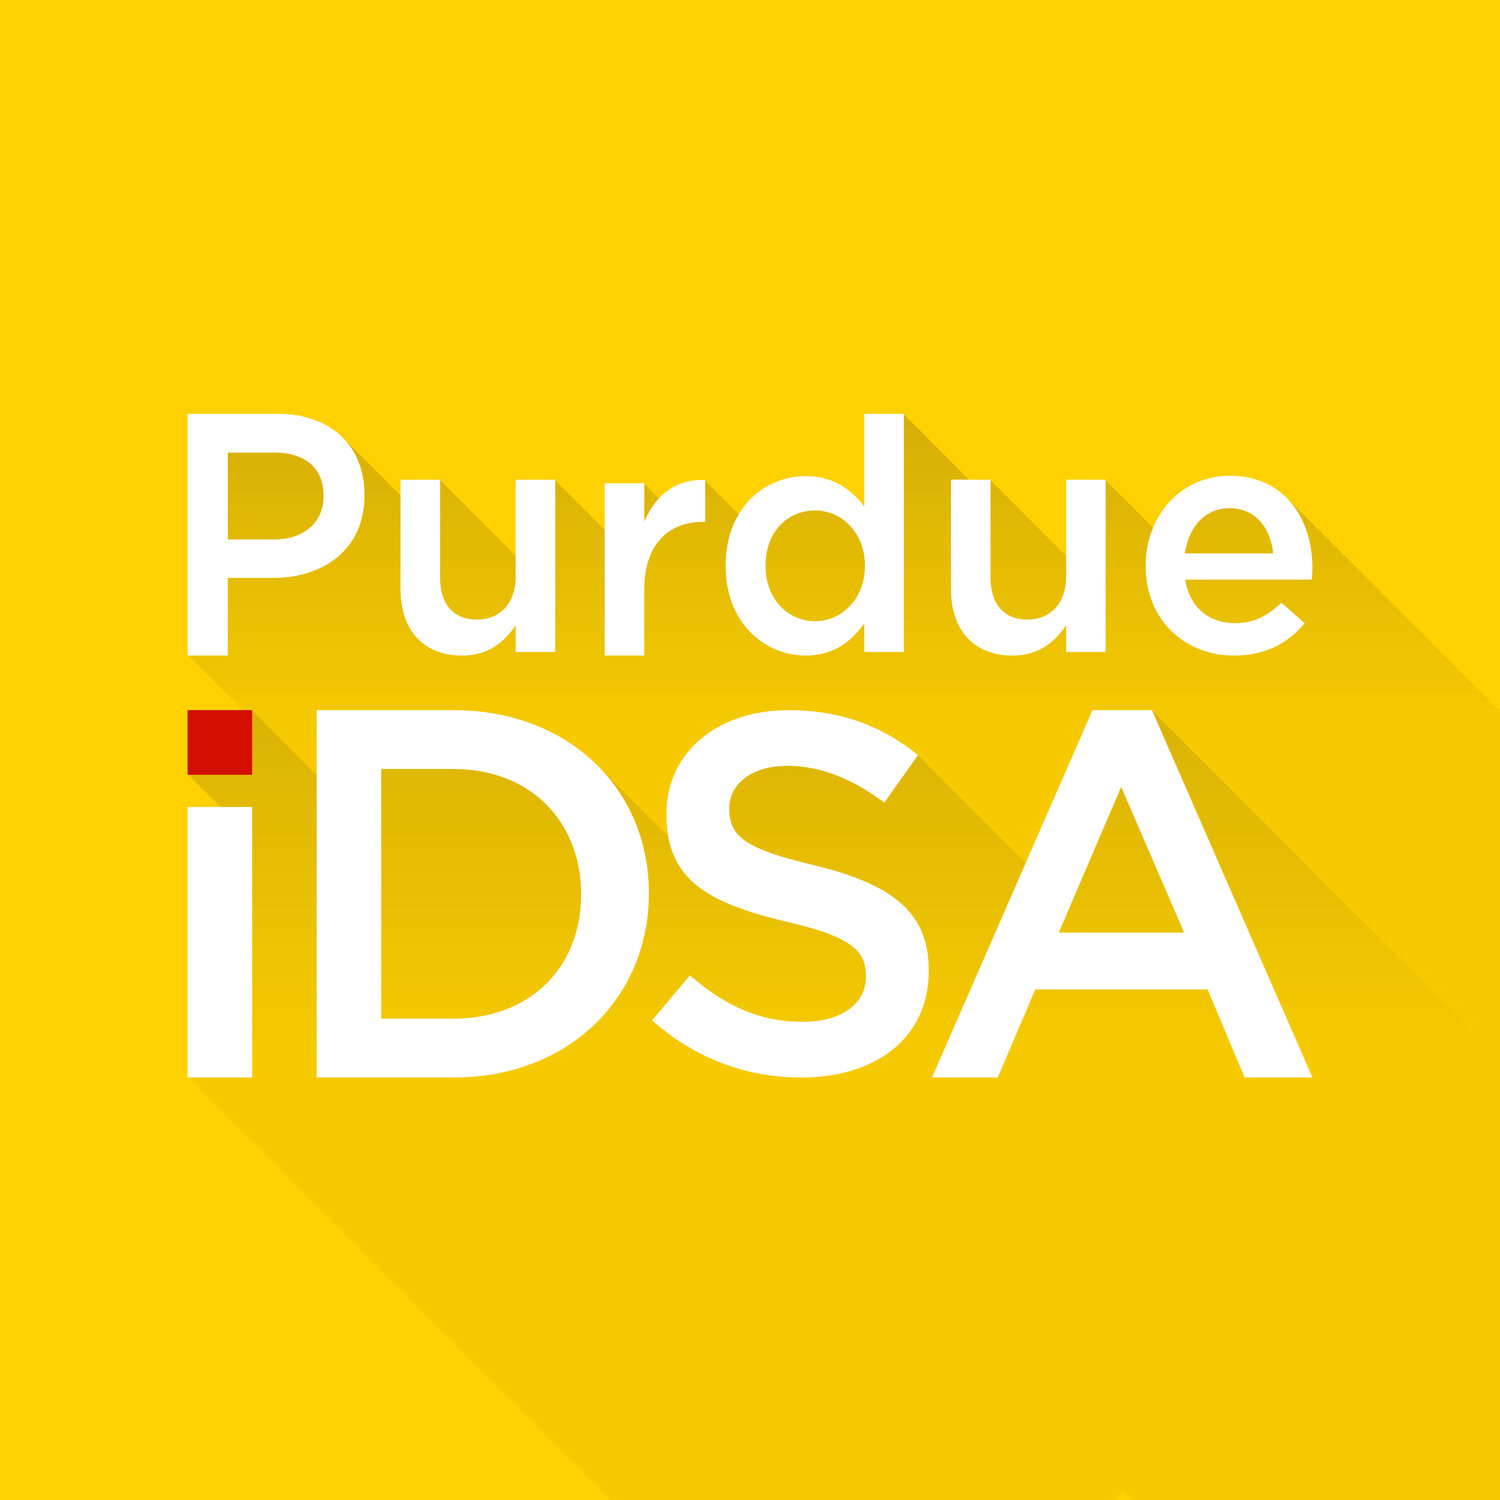 Events Purdue Idsa